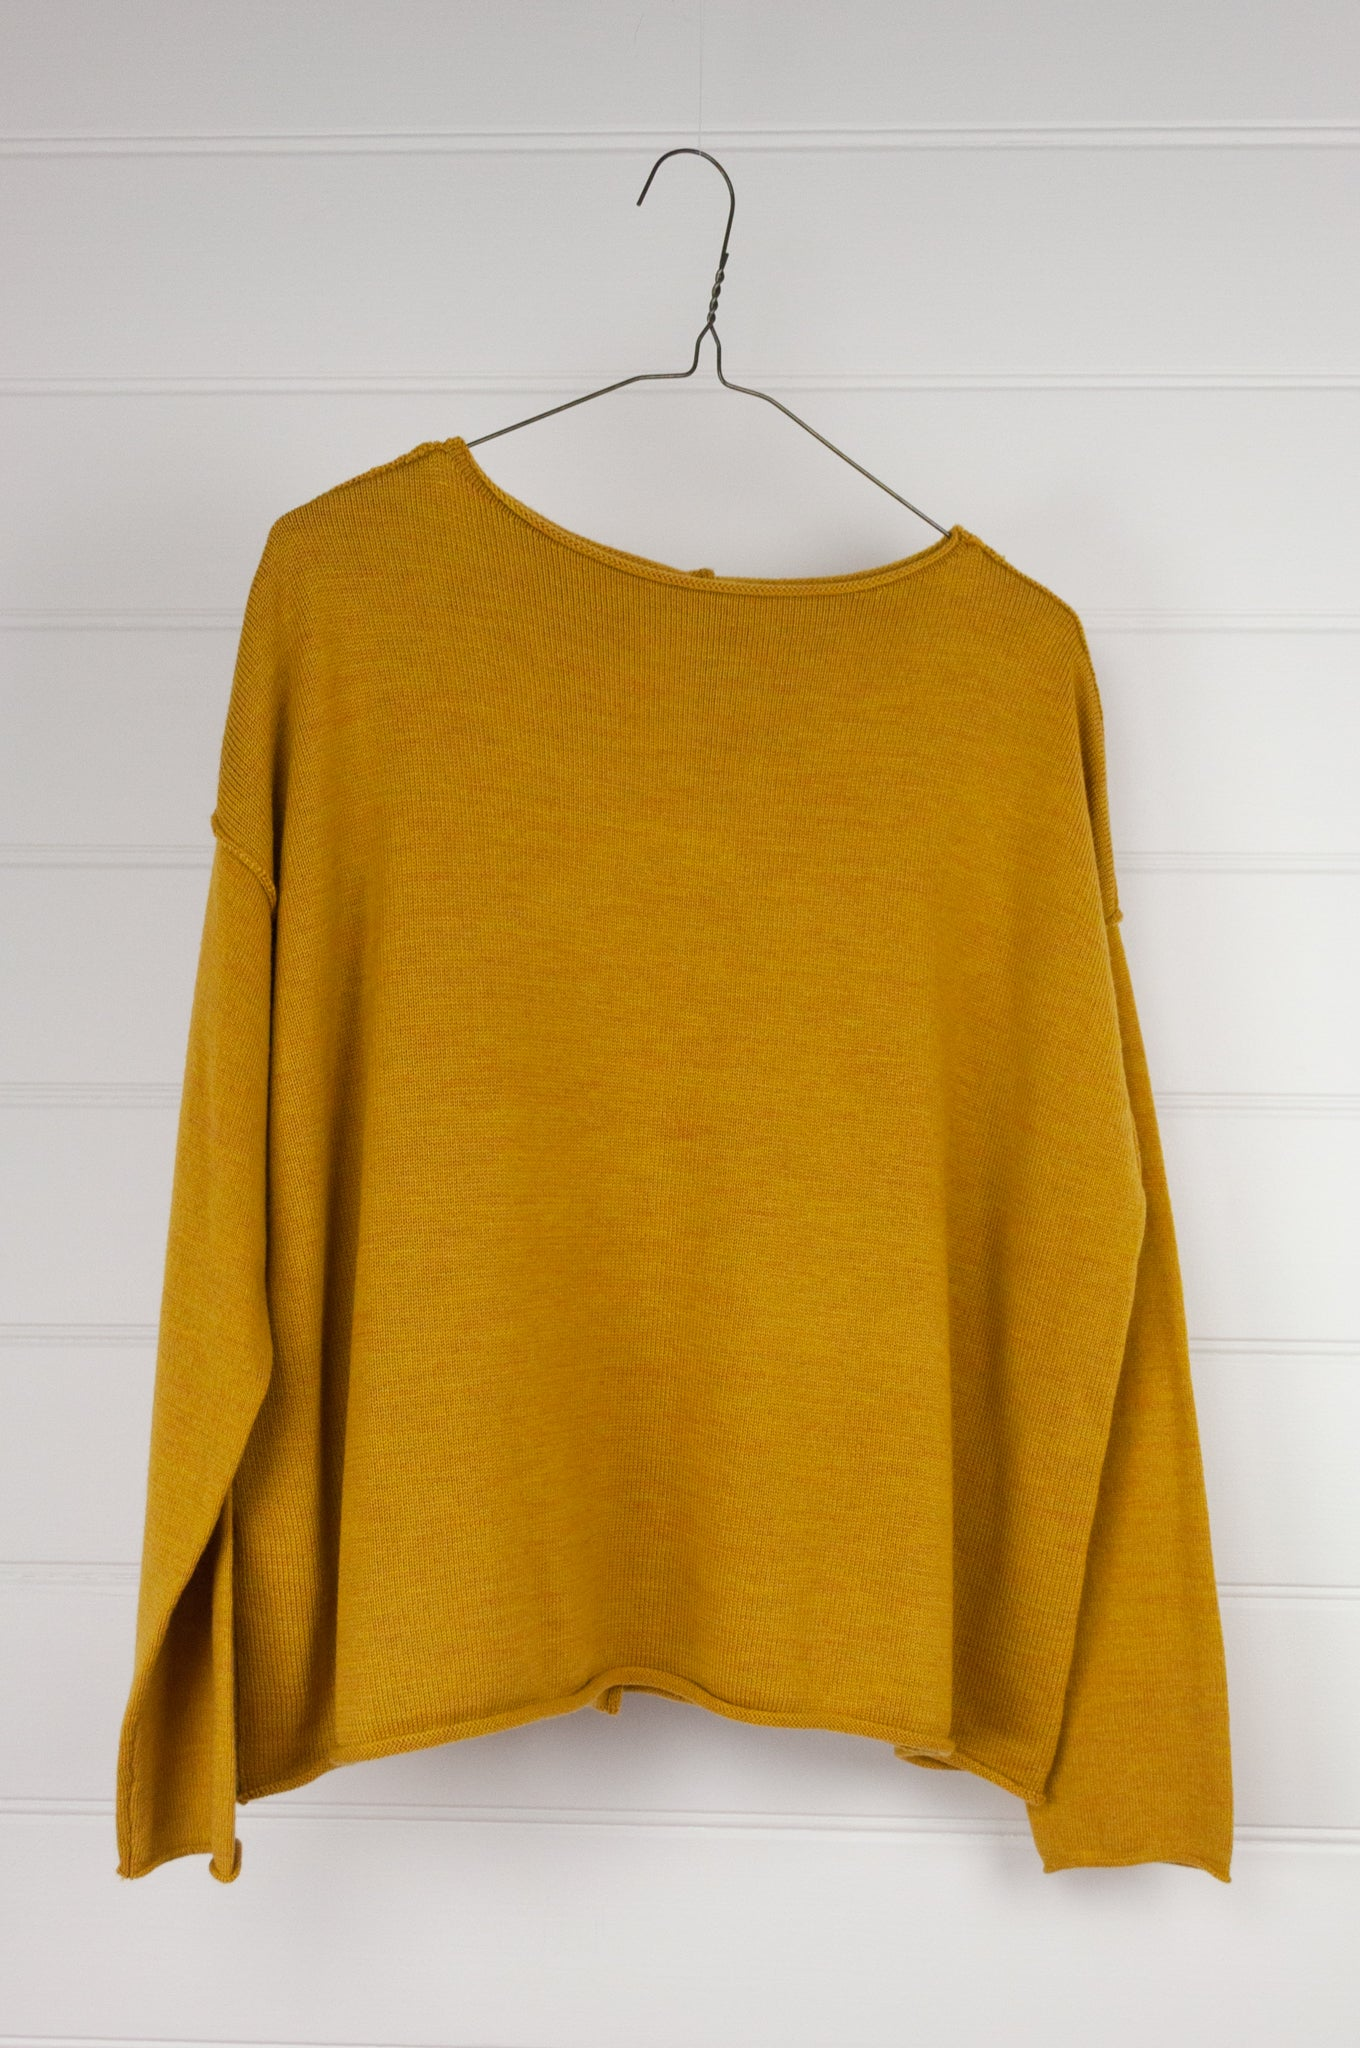 Banana Blue superfine merino wool knit jumper with button up back in mustard, with roll edges.